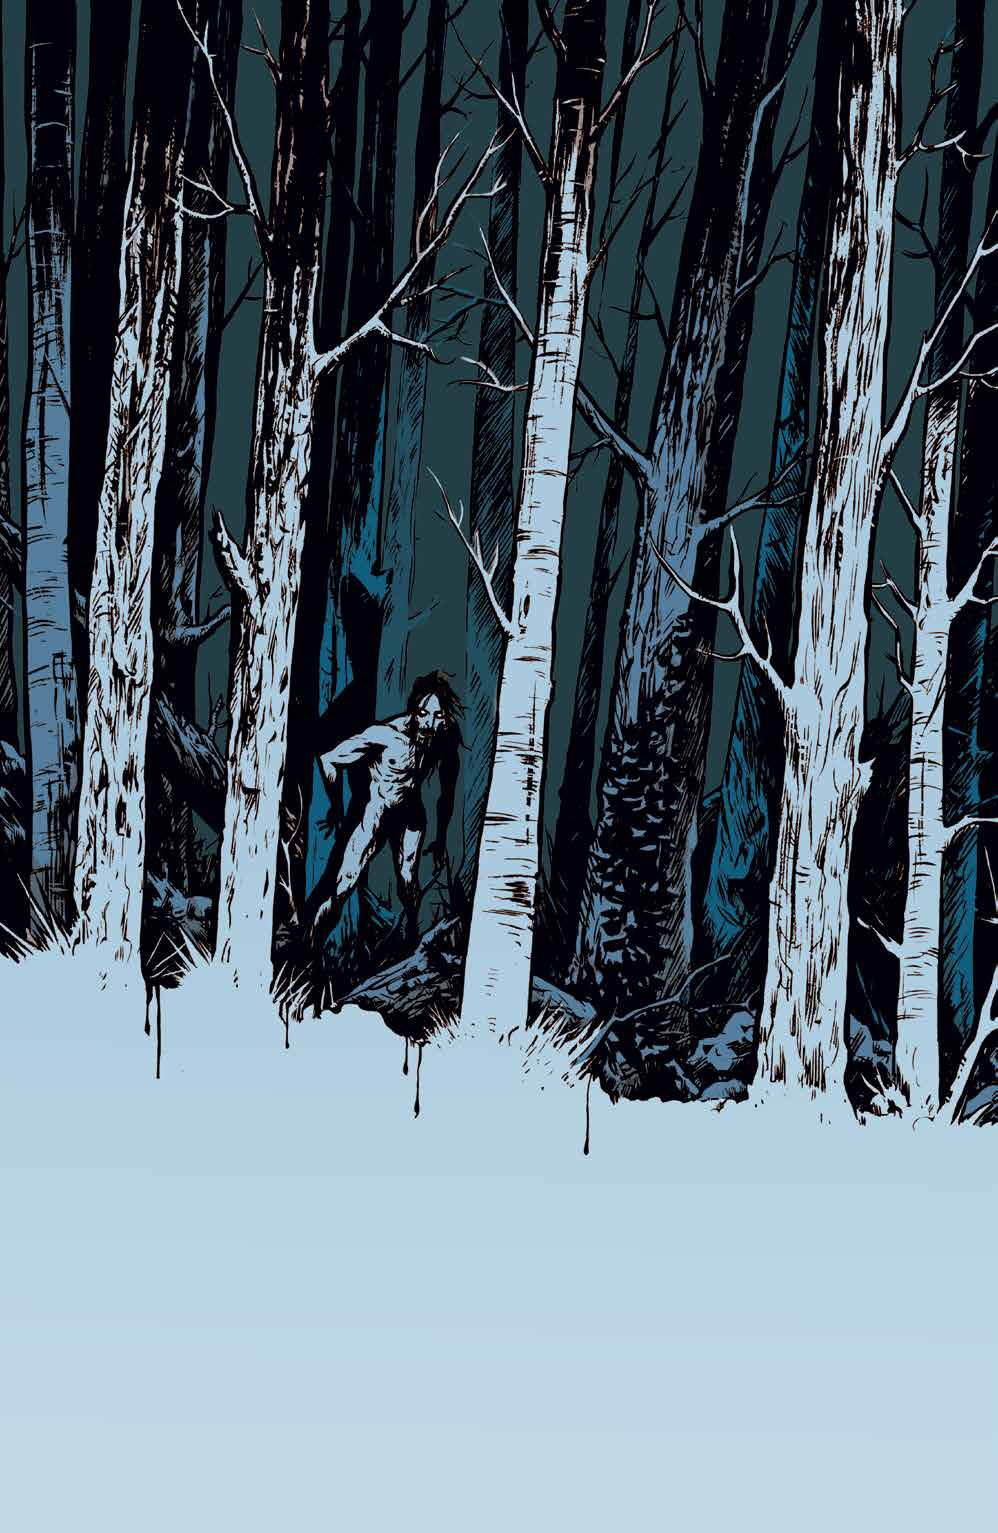 Picked up @beckycloonan's By Chance or Providence at the library. Read it in a sitting and then immediately bought it. Beautiful anthology! https://t.co/WmkLbwOesa